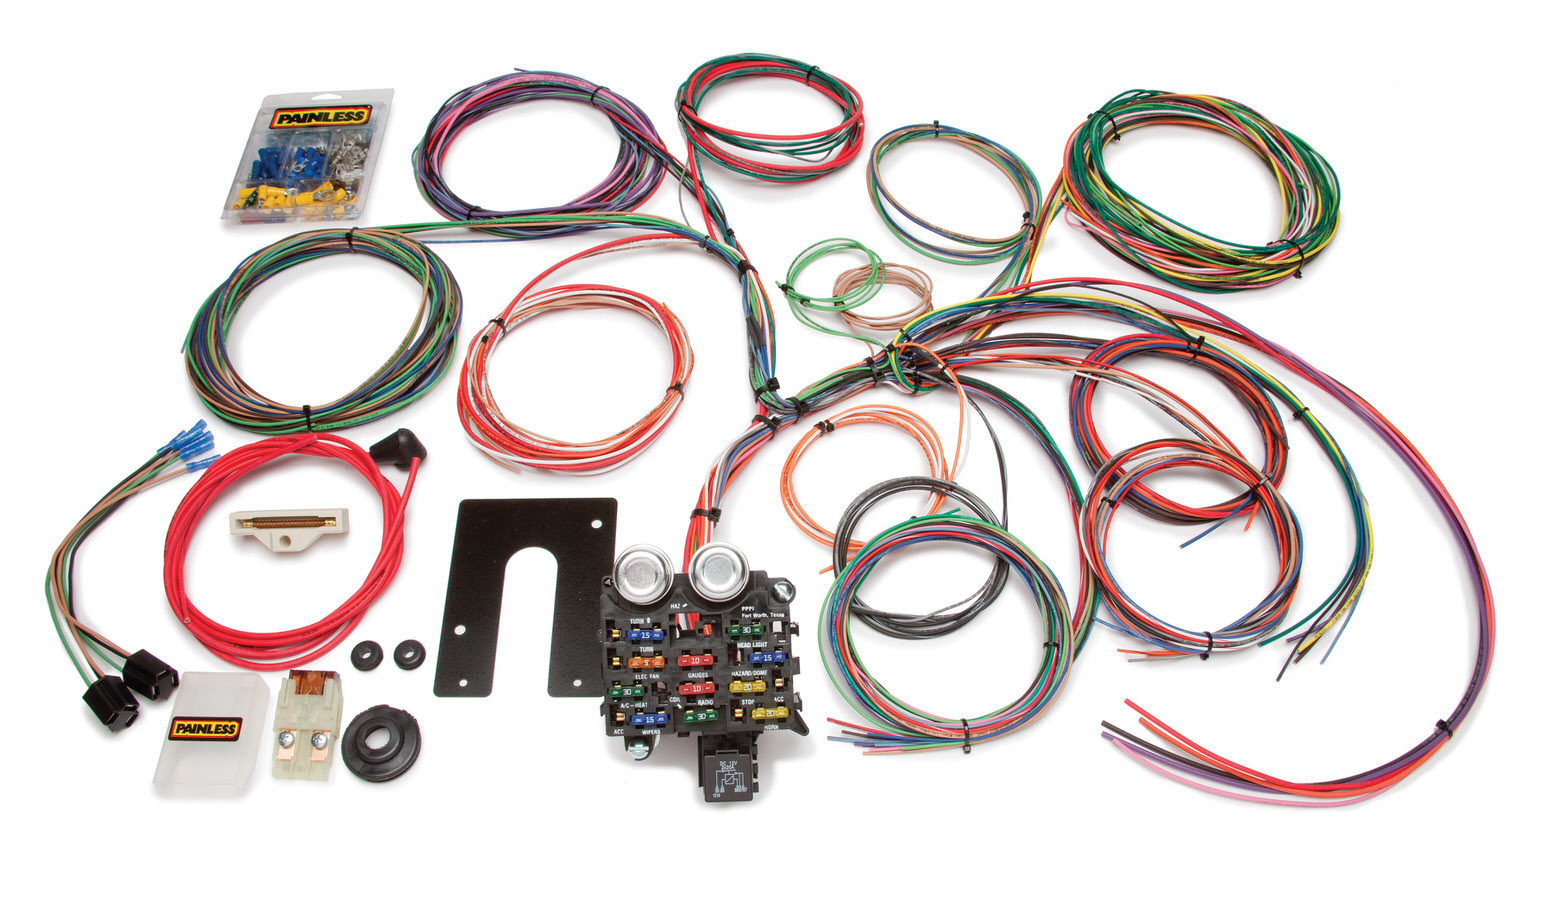 Painless Wiring 10105 Car Wiring Harness, Classic Customizable, Complete, 22 Circuit, Complete, Jeep CJ 1944-75, Kit